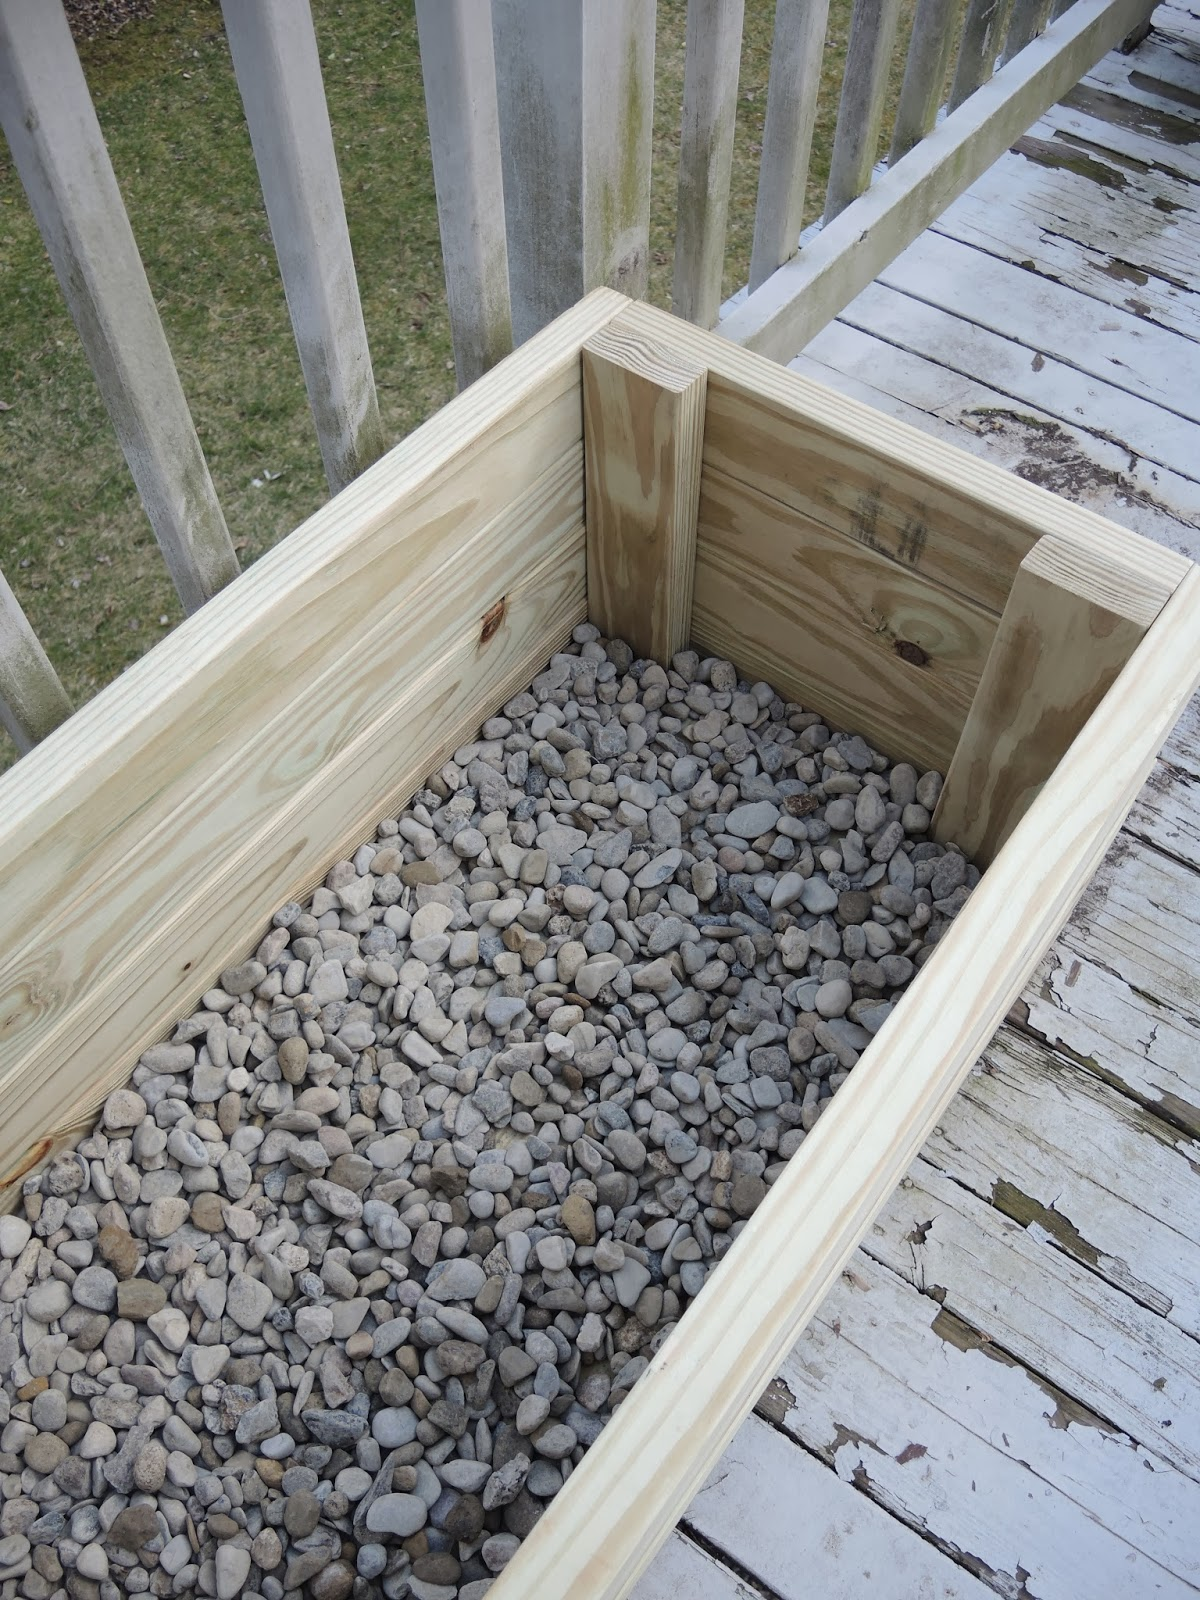 http://www.cmshawstudios.blogspot.com/2013/04/how-to-build-planter-out-of-pressure.html